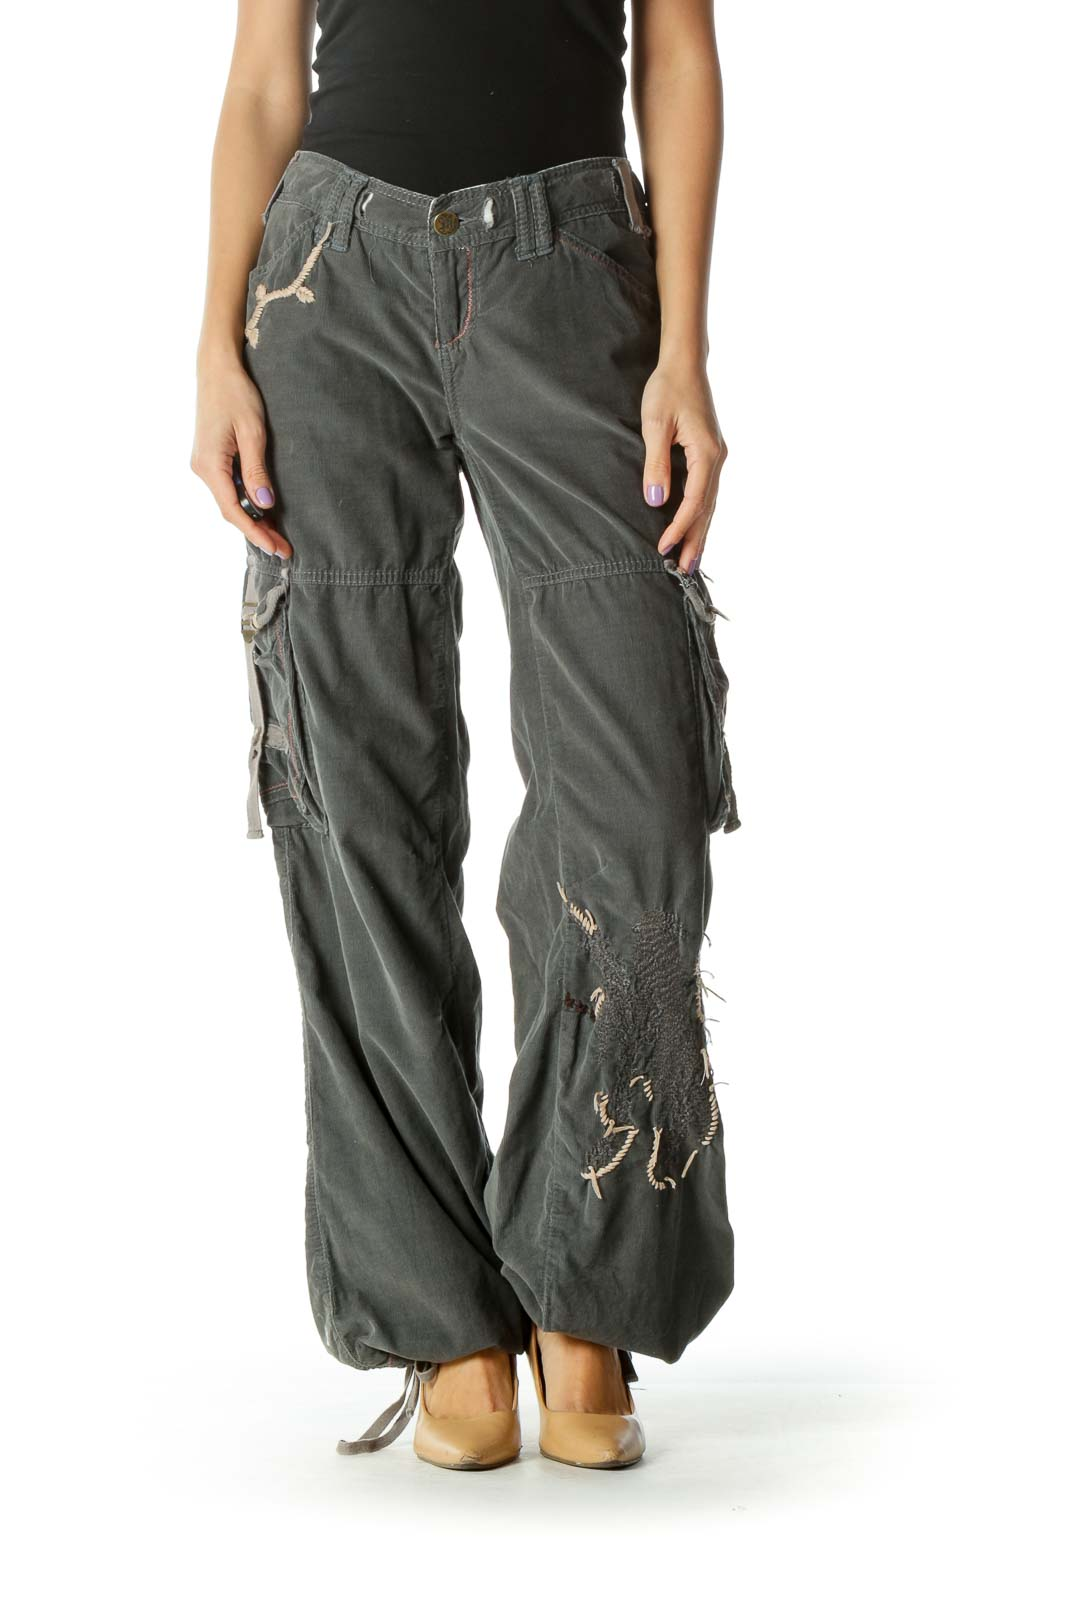 Gray Embroidered Cargo Pants